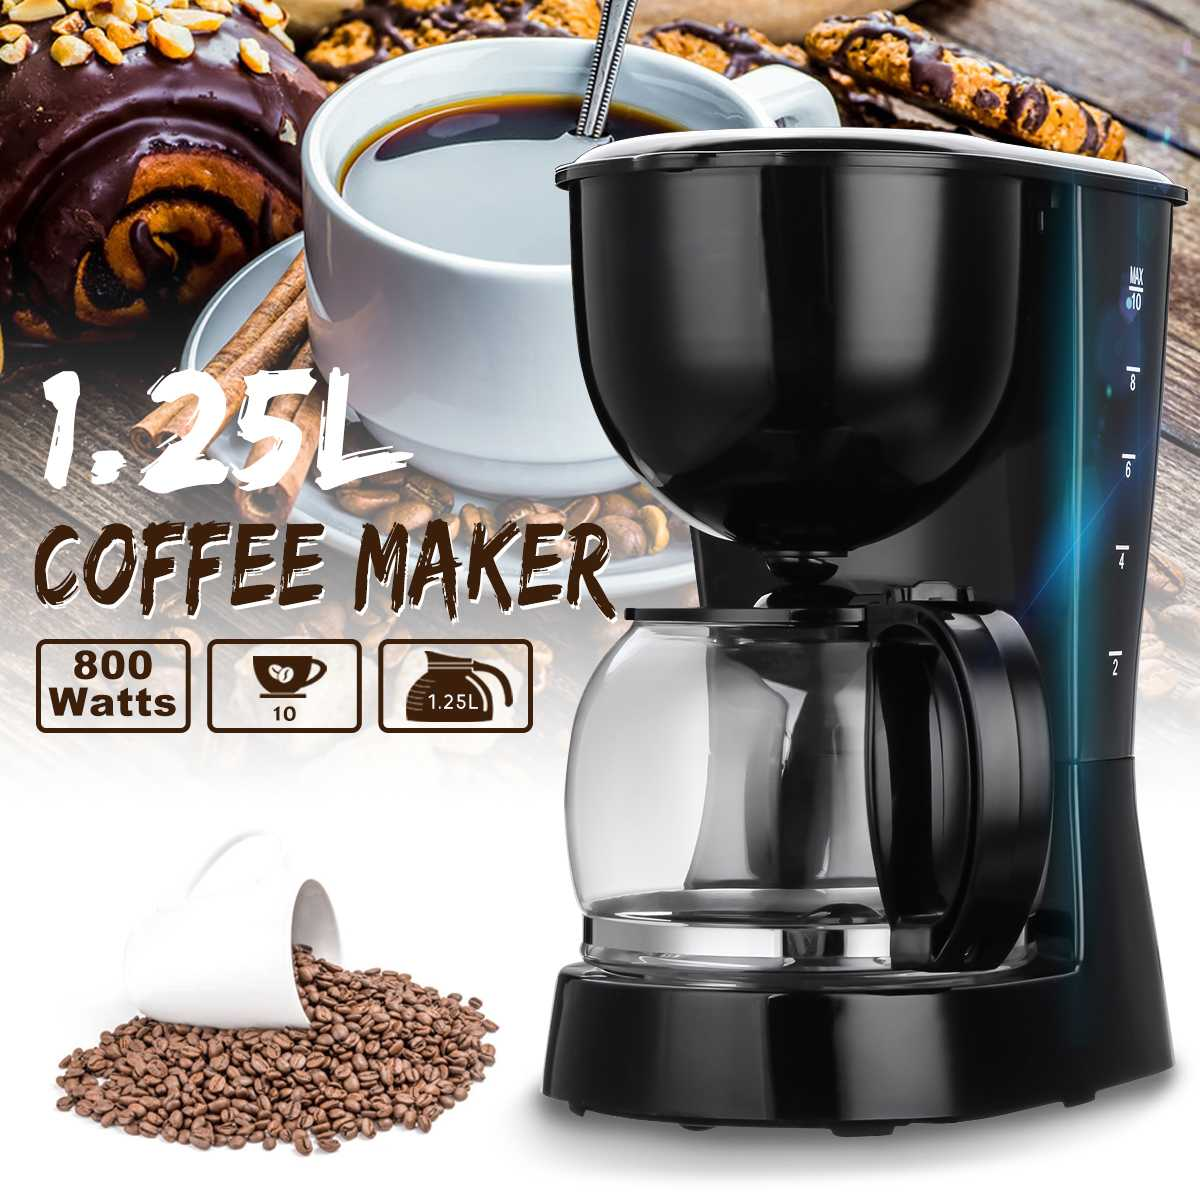 800W 1.25L Electric Drip Coffee Maker Household Tea Maker Espresso Latte Coffee Pot Home Office Cafe Coffee Making Machine800W 1.25L Electric Drip Coffee Maker Household Tea Maker Espresso Latte Coffee Pot Home Office Cafe Coffee Making Machine